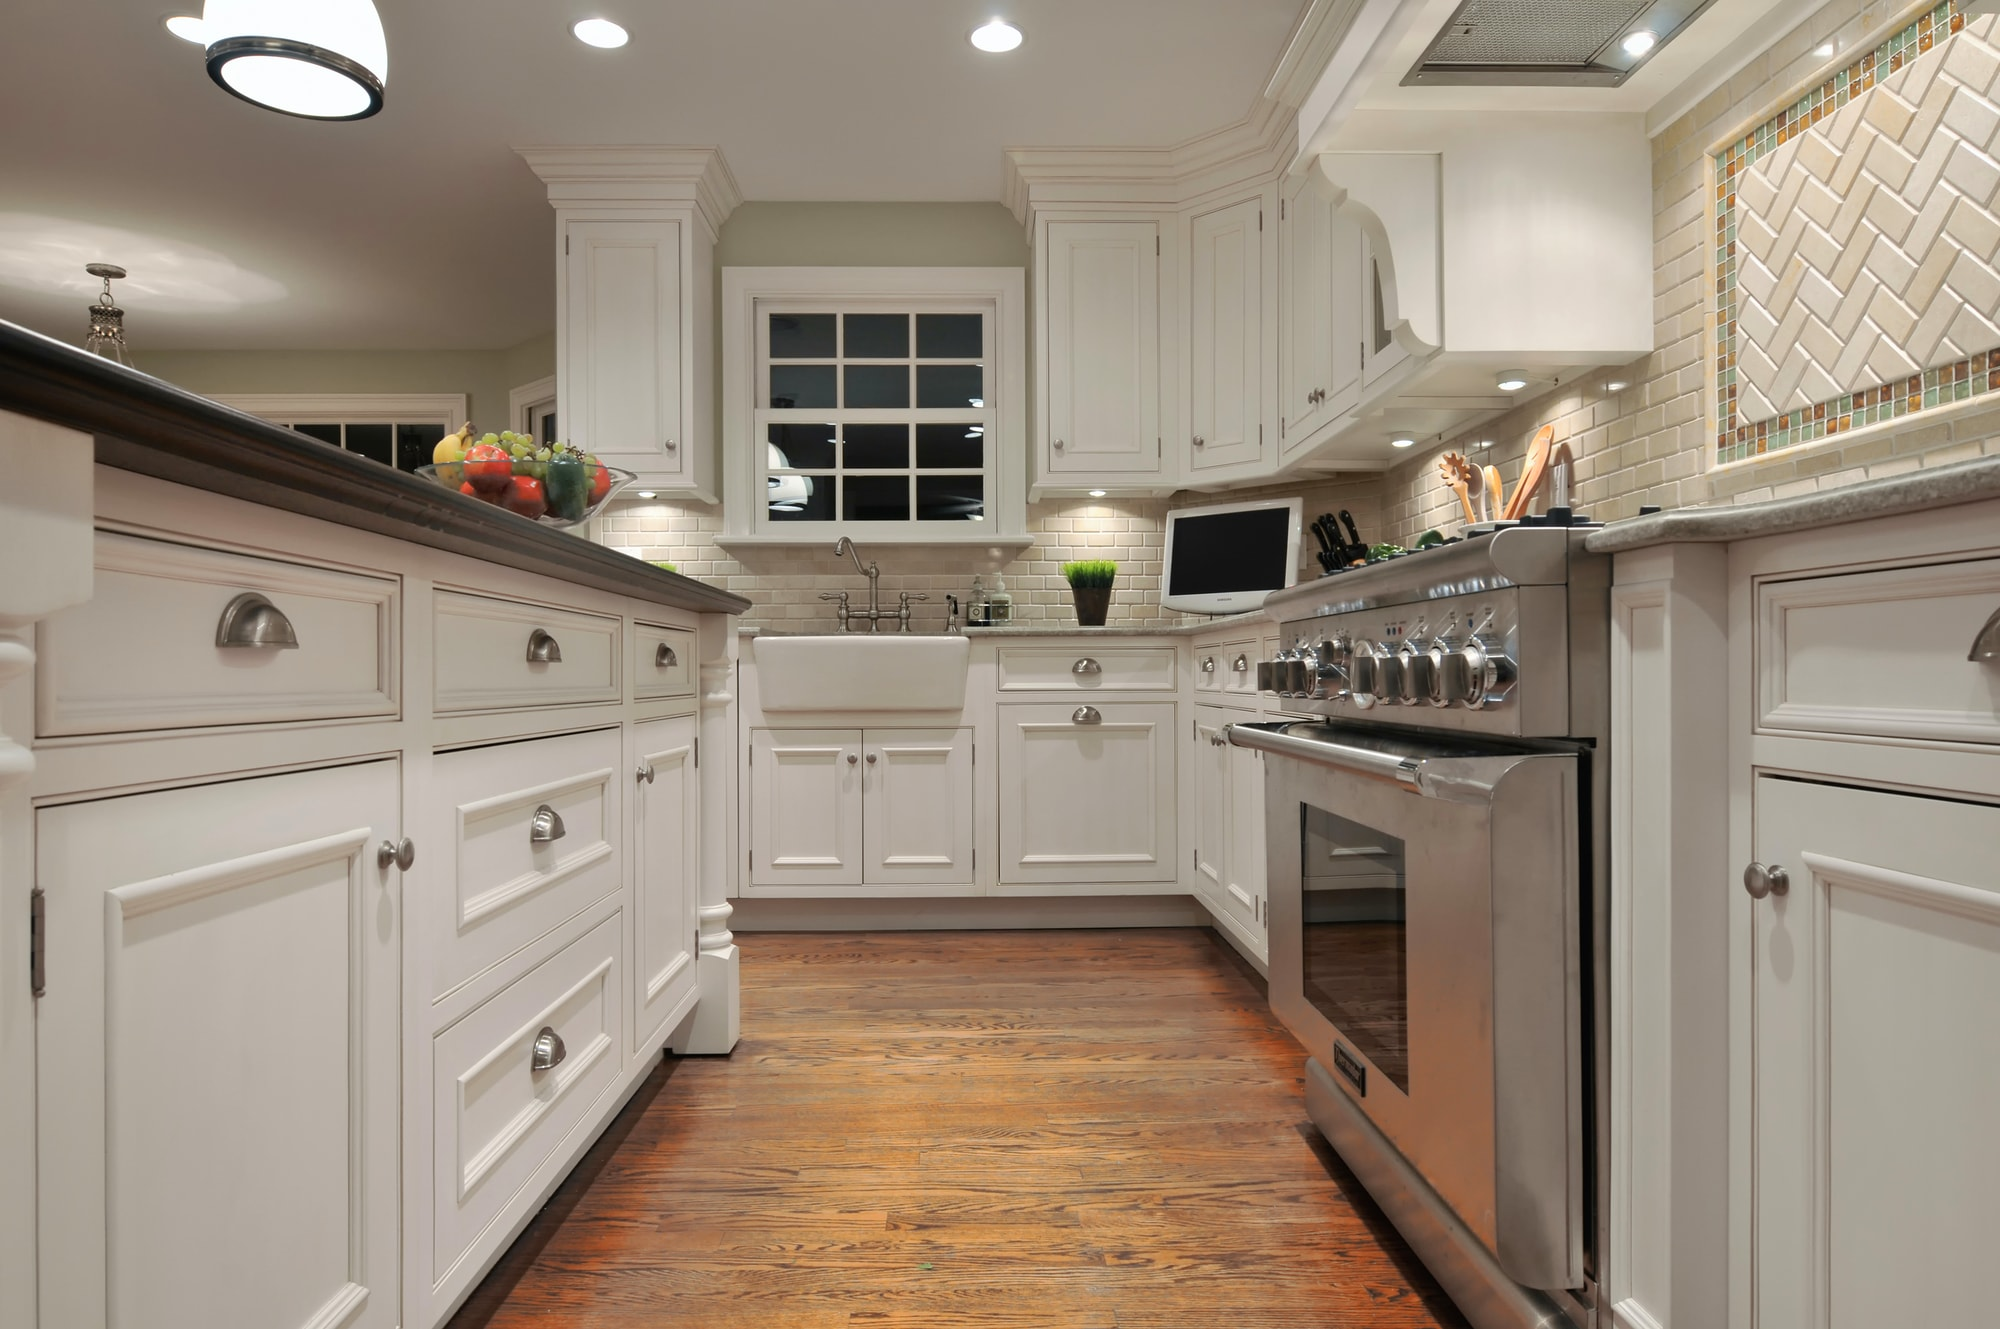 Traditional style kitchen with with upper kitchen cabinets